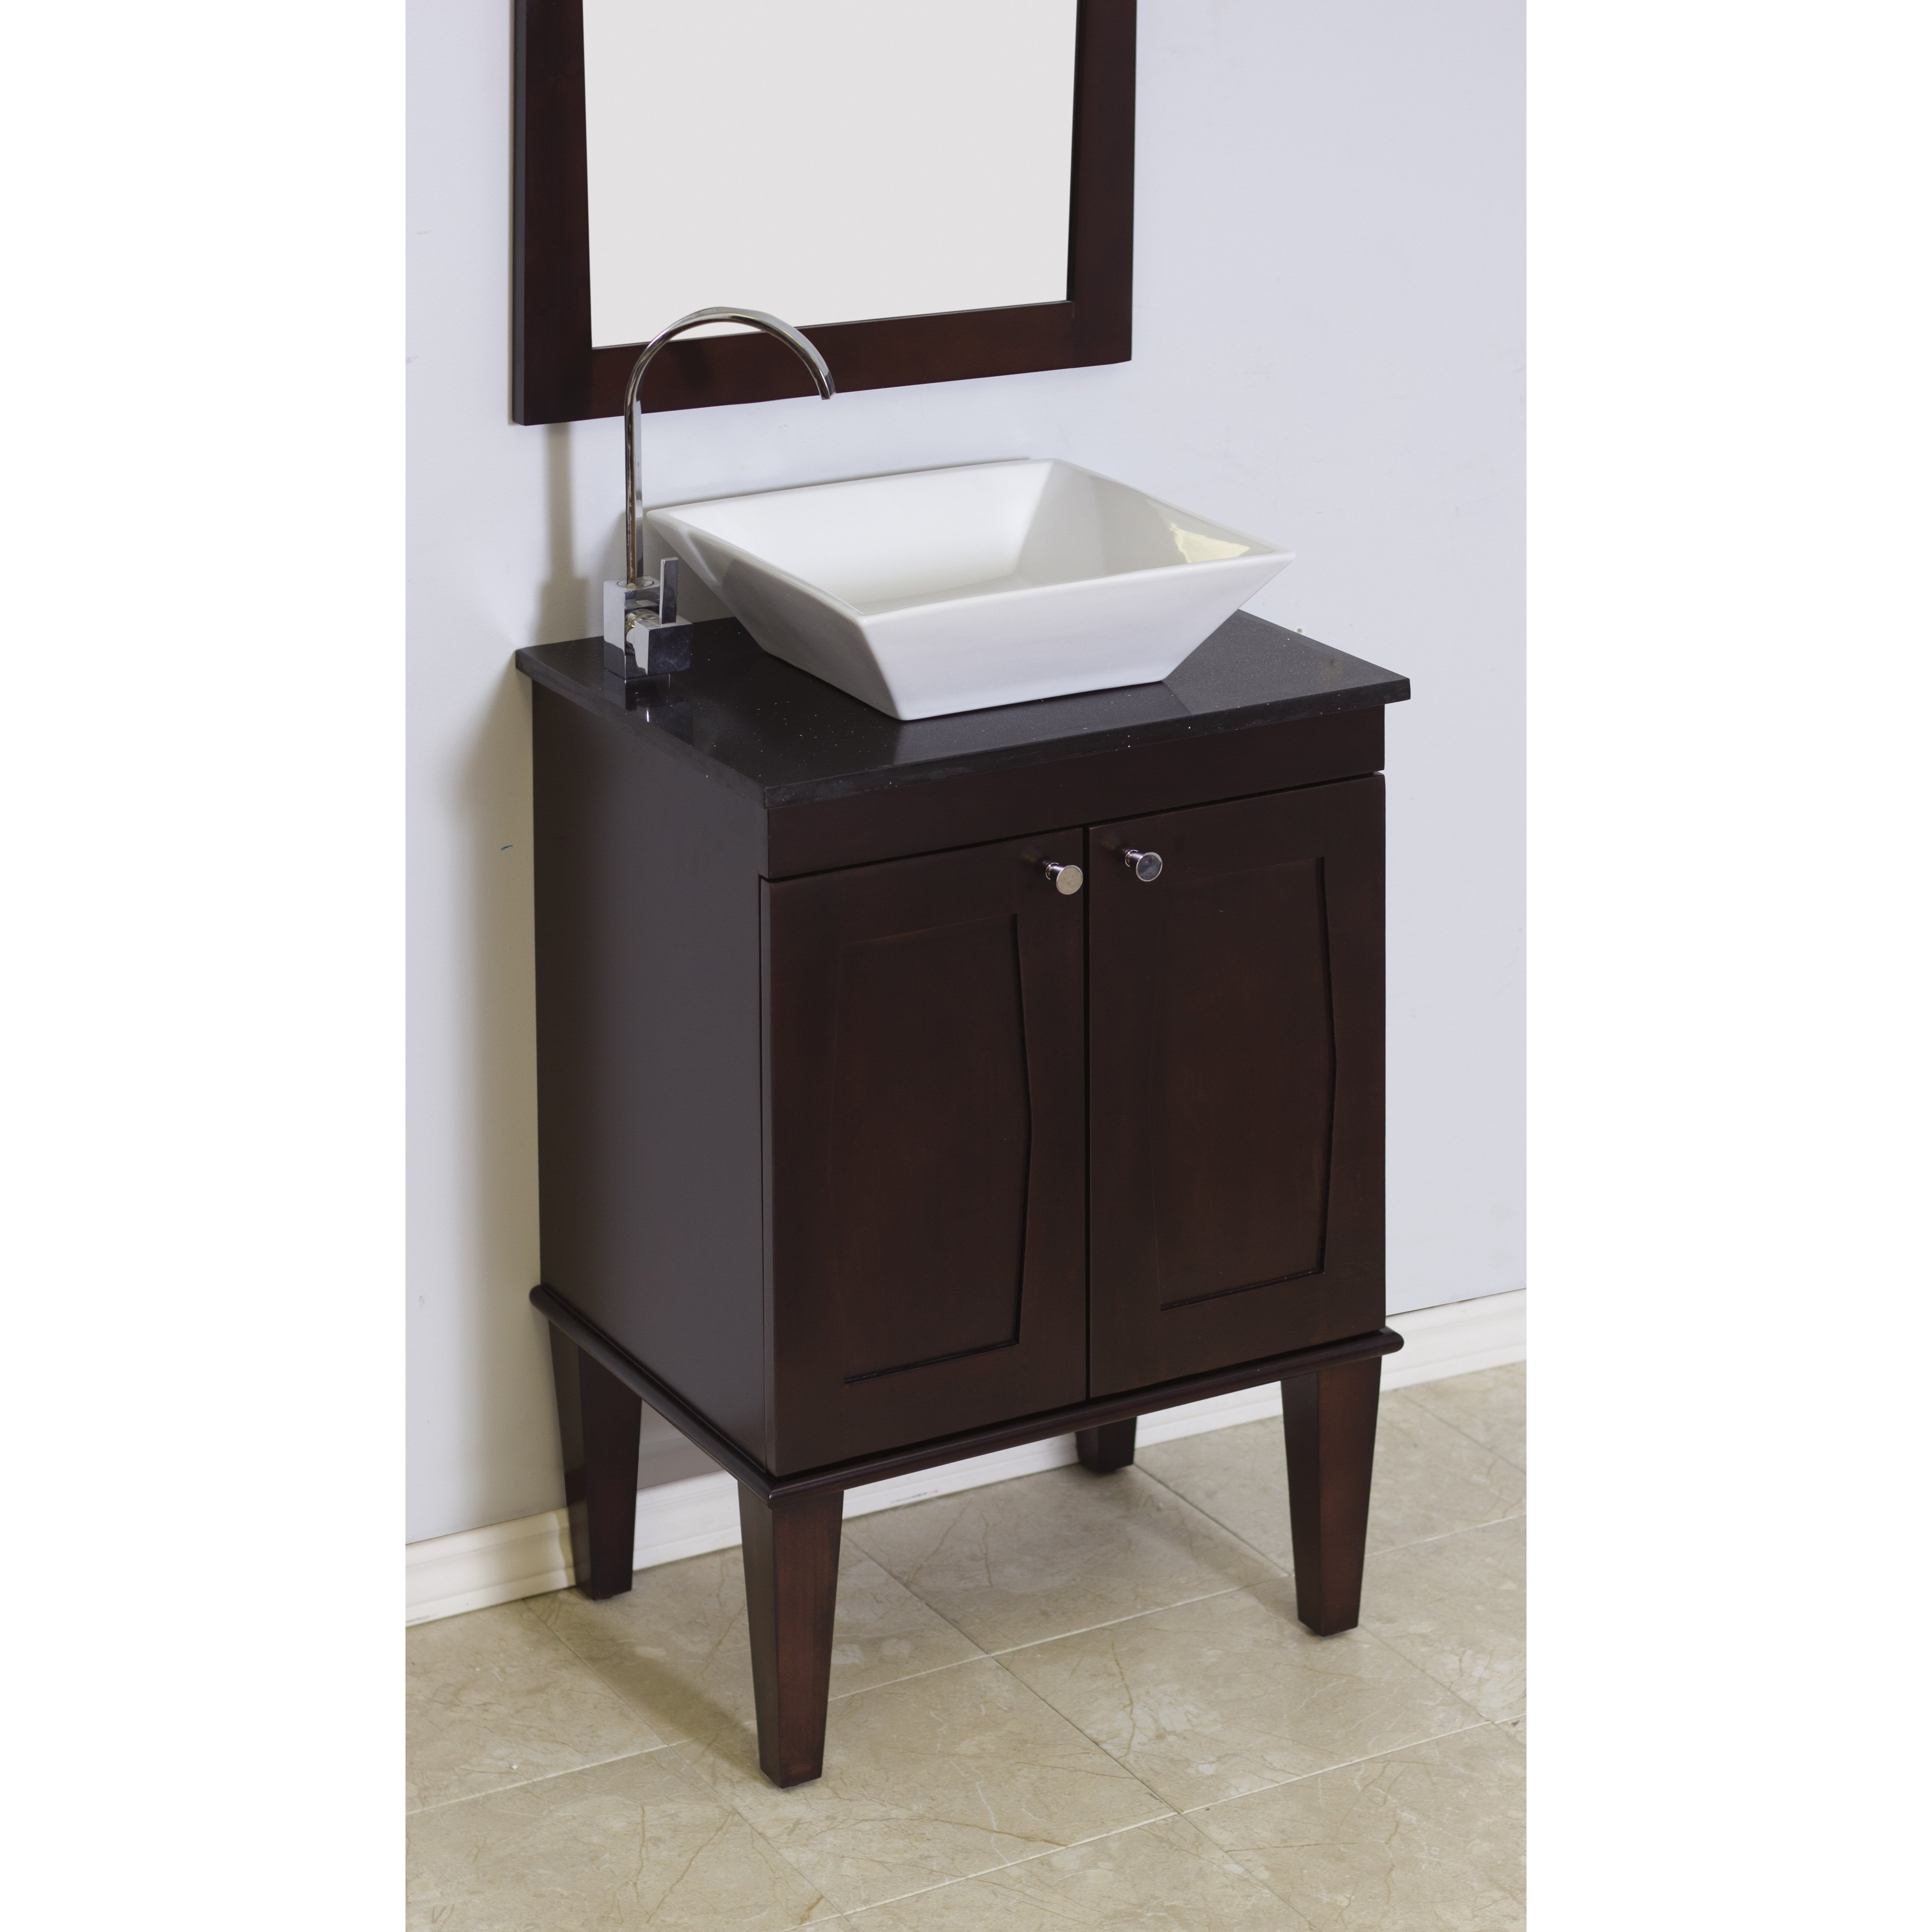 American imaginations 24 single transitional bathroom vanity set wayfair Transitional bathroom vanities